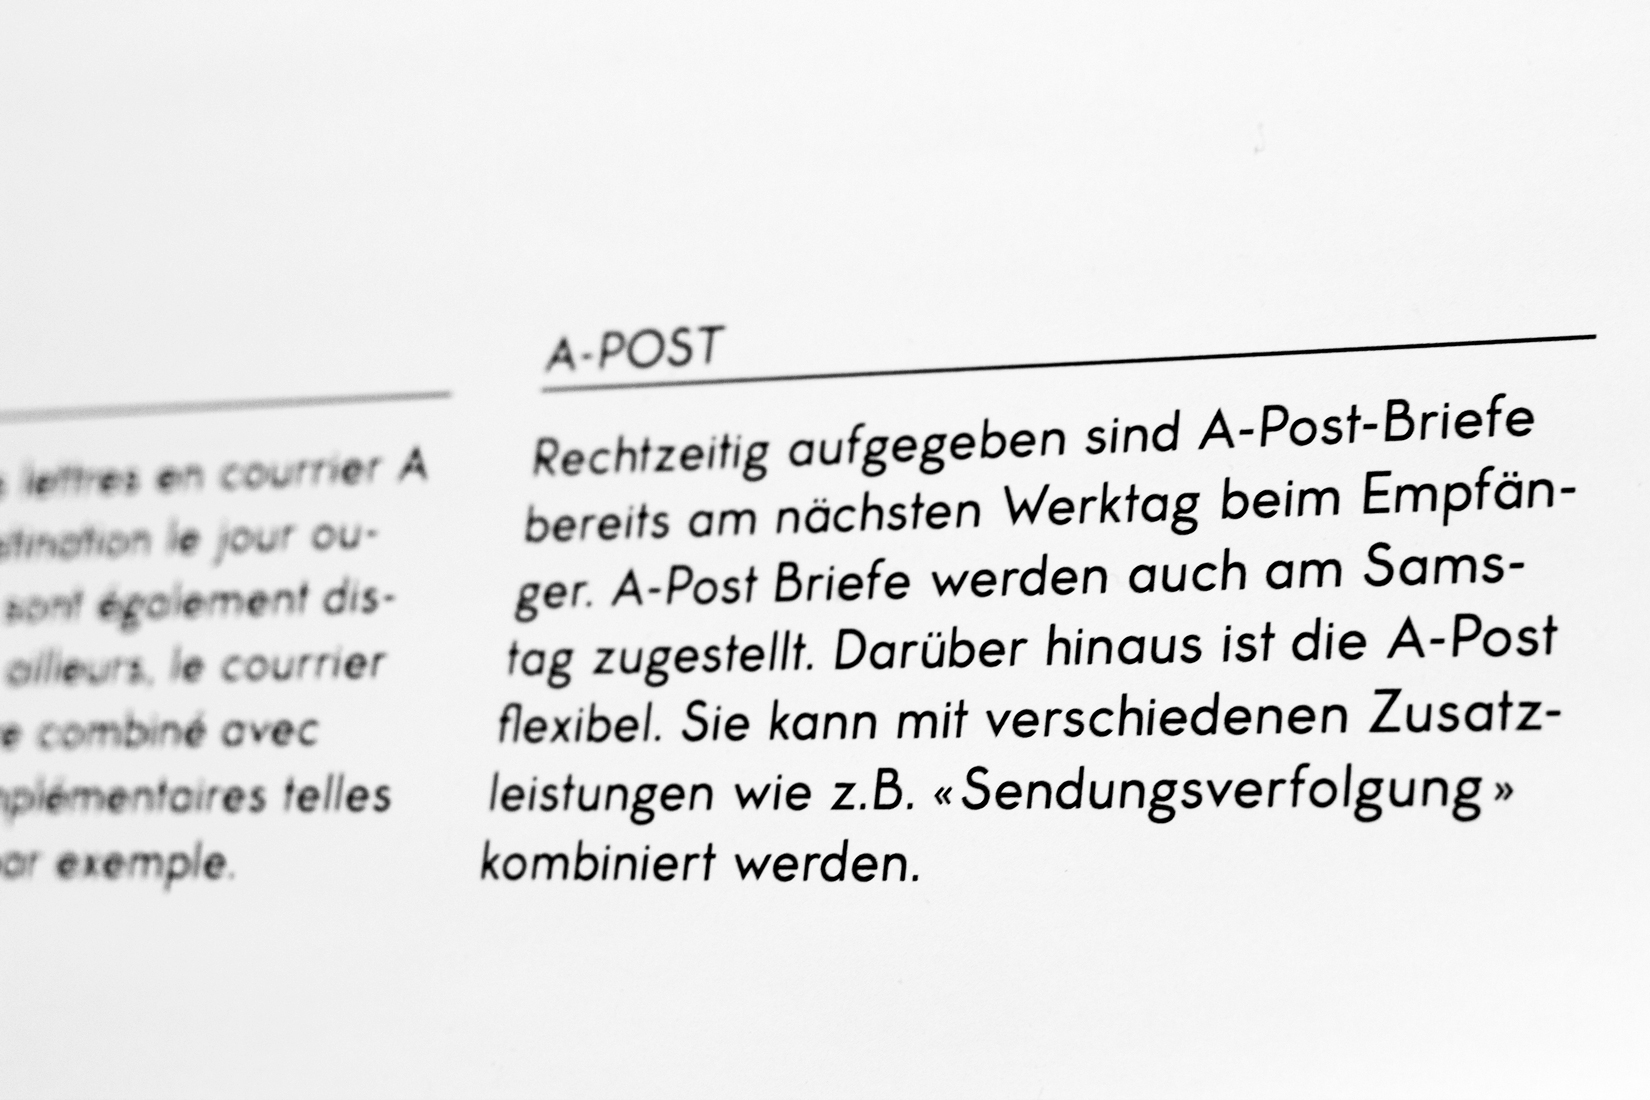 Postdienst Regular, typography, typeface, sans serif, detail